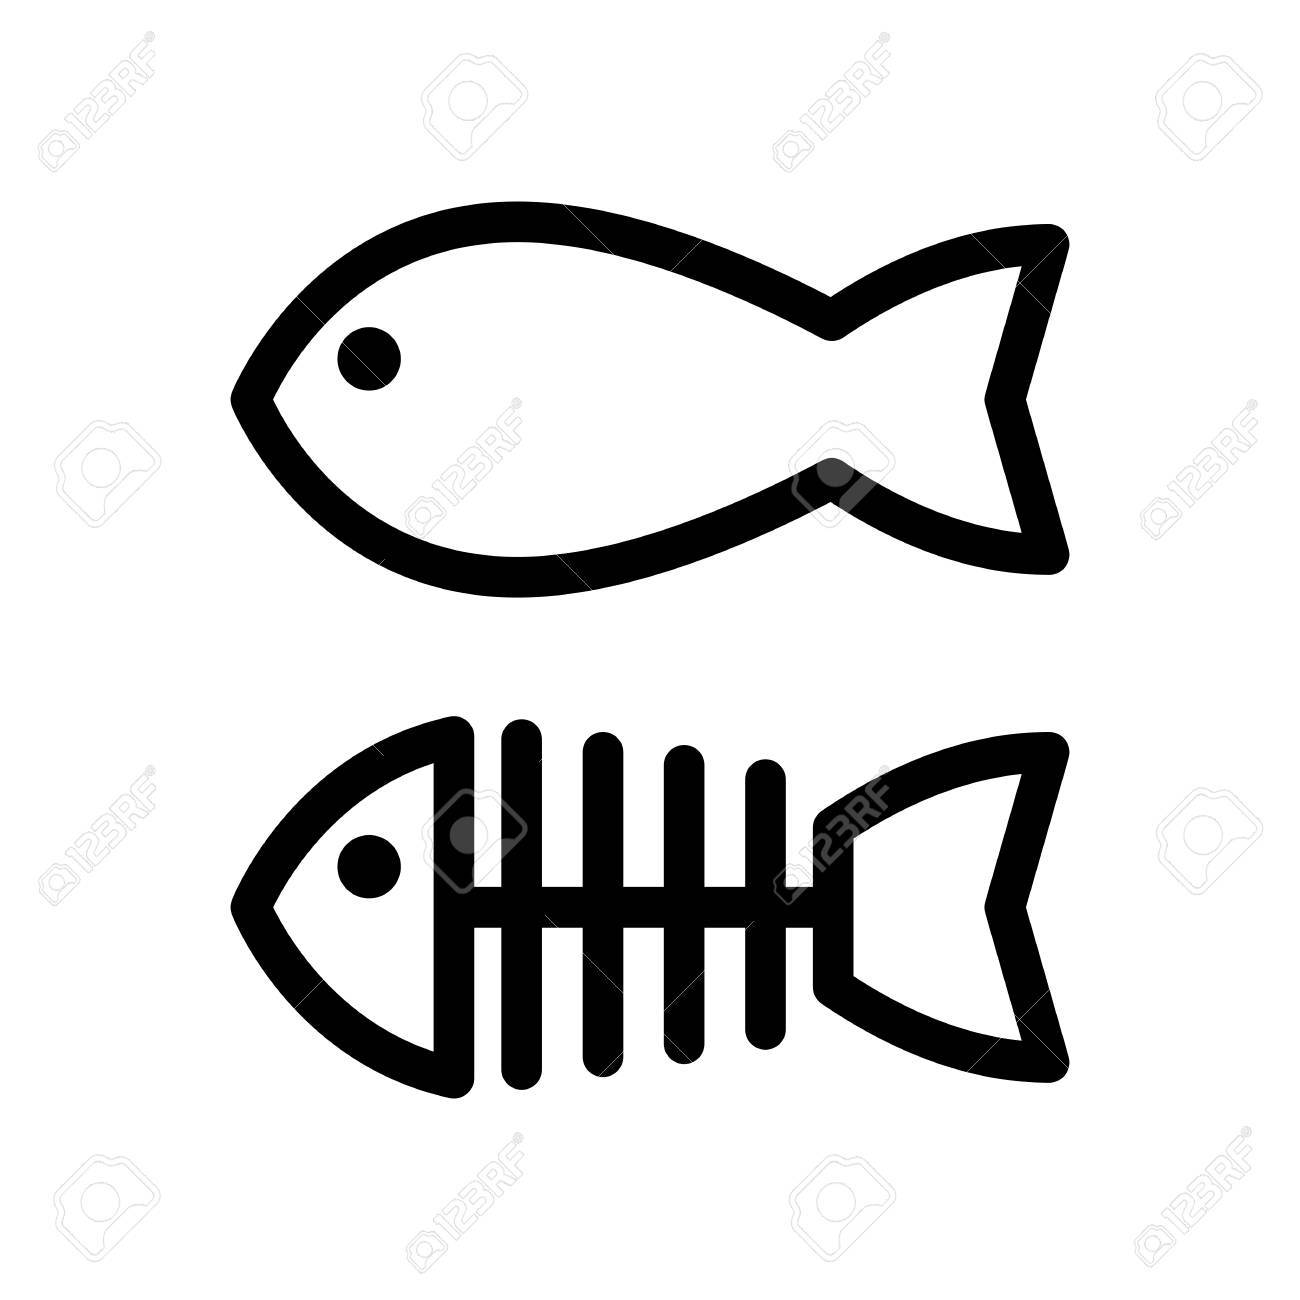 Fish and skeleton simple vector icon. Black and white illustration of fish bones. Outline linear icon. - 79516974